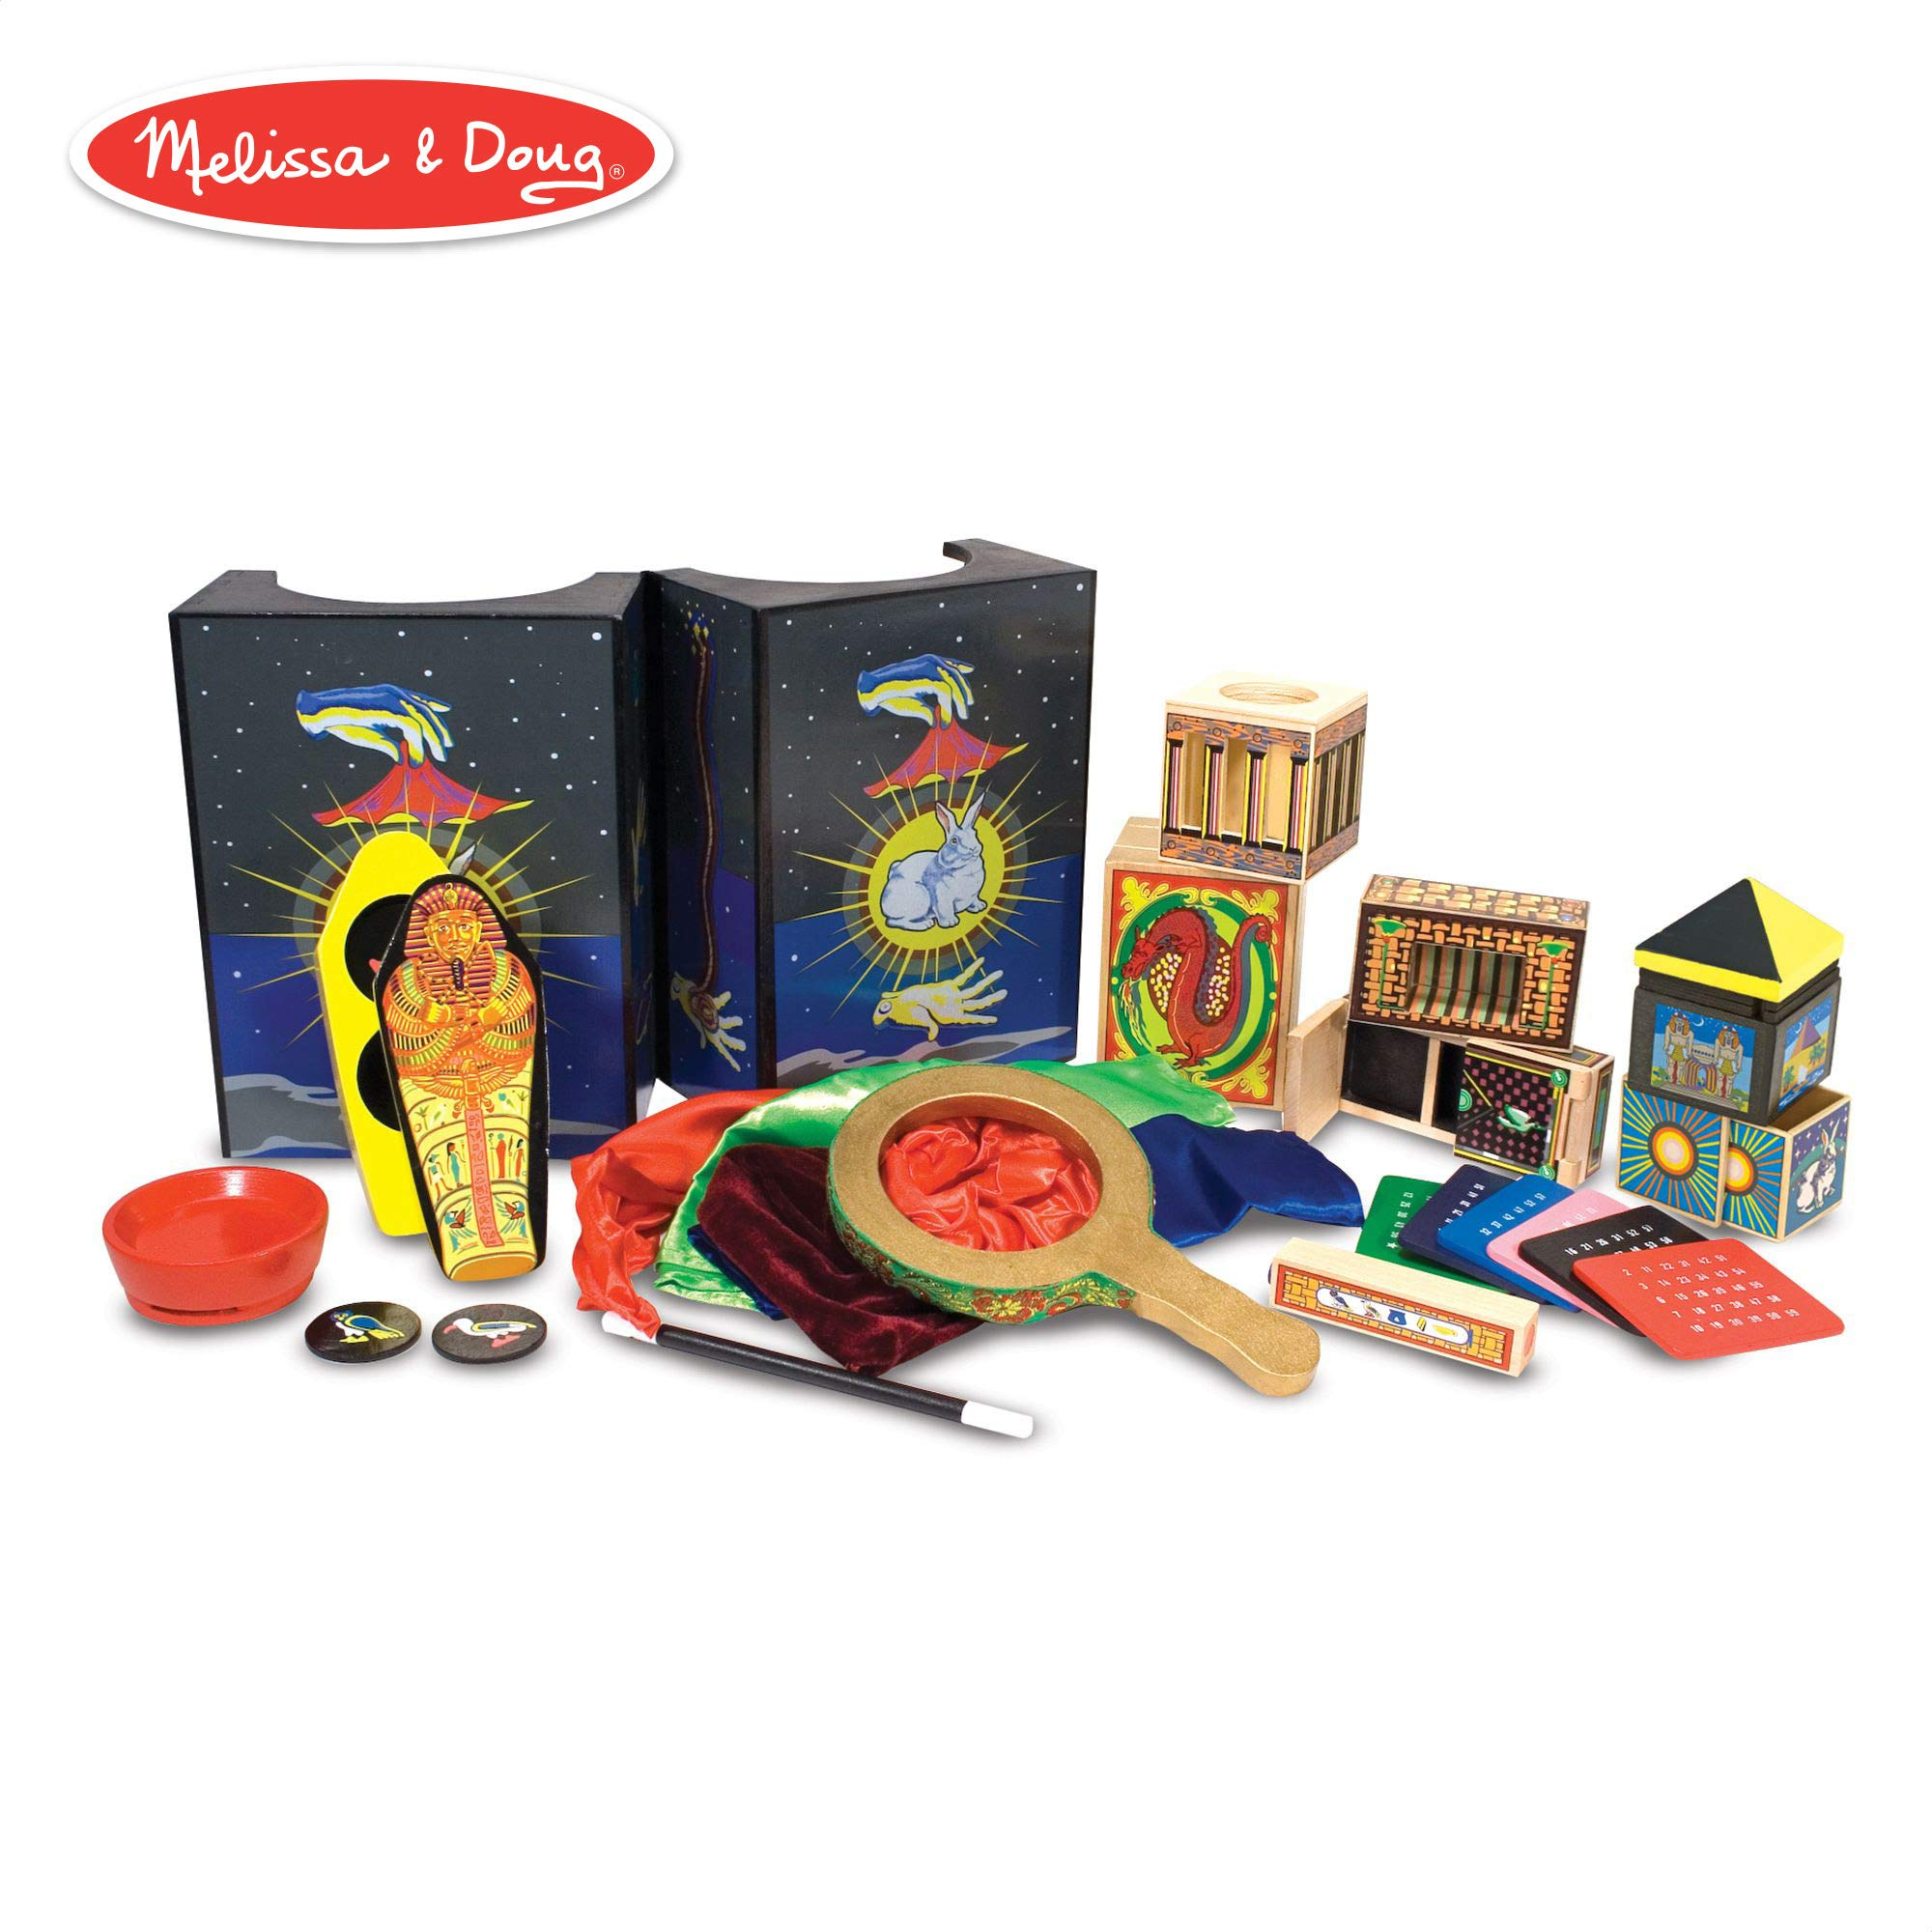 Melissa & Doug Deluxe Magic Set, Kids Magic Set, 10 Classic Tricks, Step-By-Step Instructions, 3.8'' H x 14.1'' W x 9.6'' L by Melissa & Doug